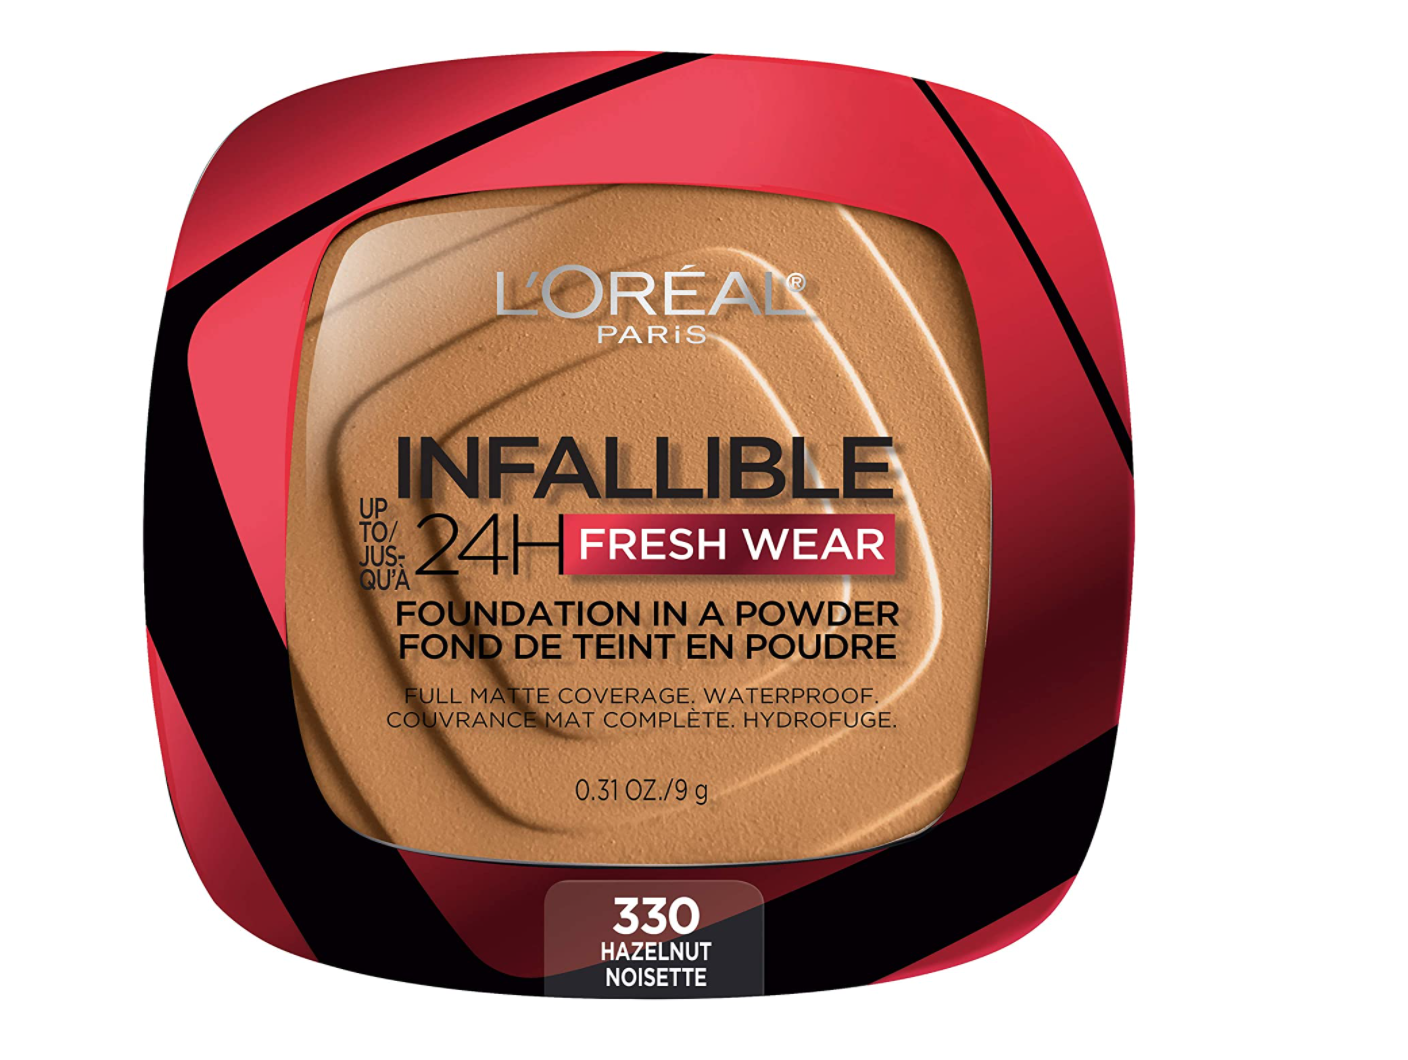 base, loreal, infallible, nuevo producto, 2021